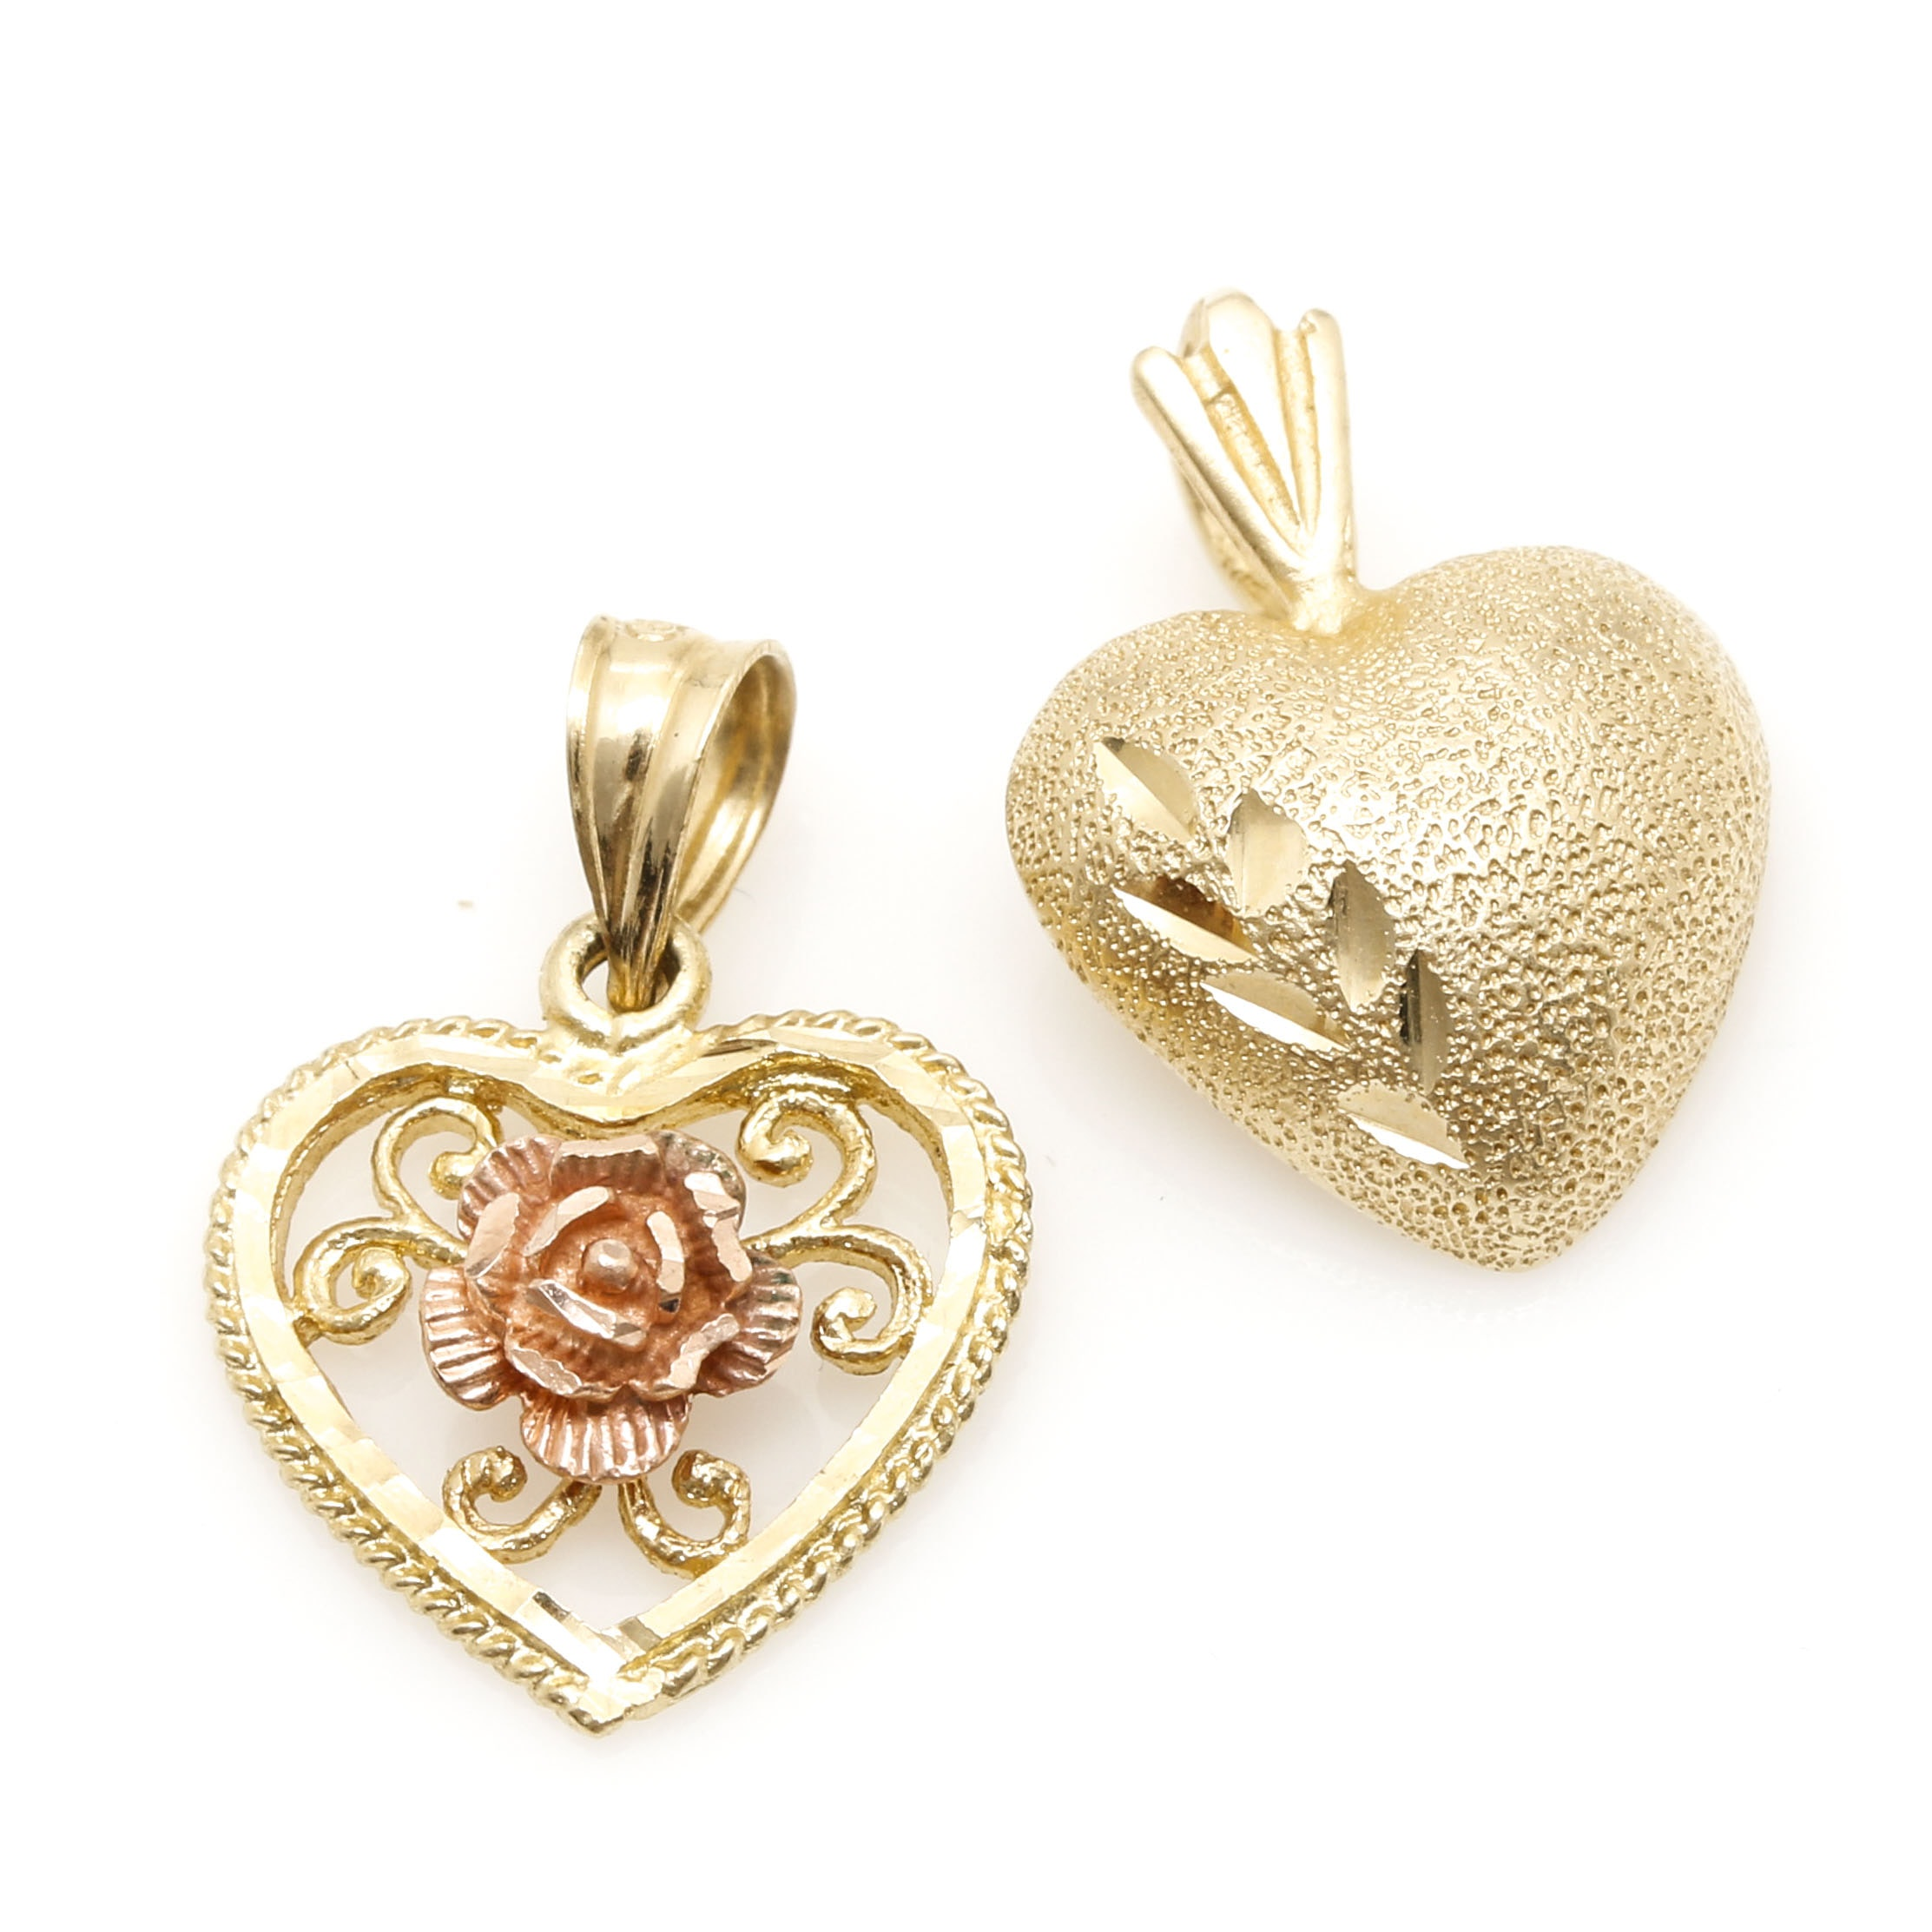 Selection of 14K Yellow and Rose Gold Heart Pendants